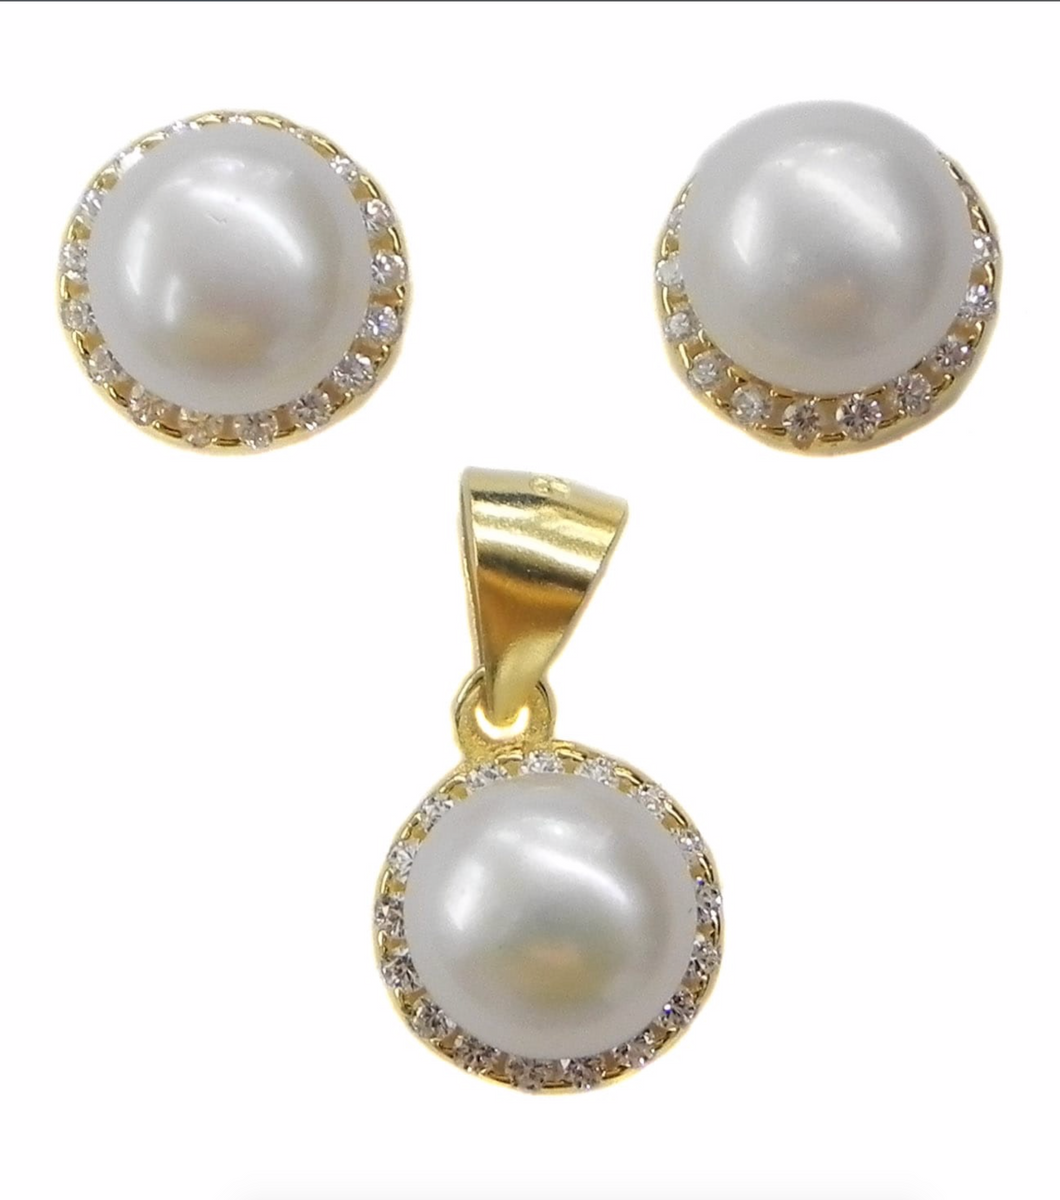 Set of 7mm Freshwater Pearls Sterling Silver Earrings and Pendant